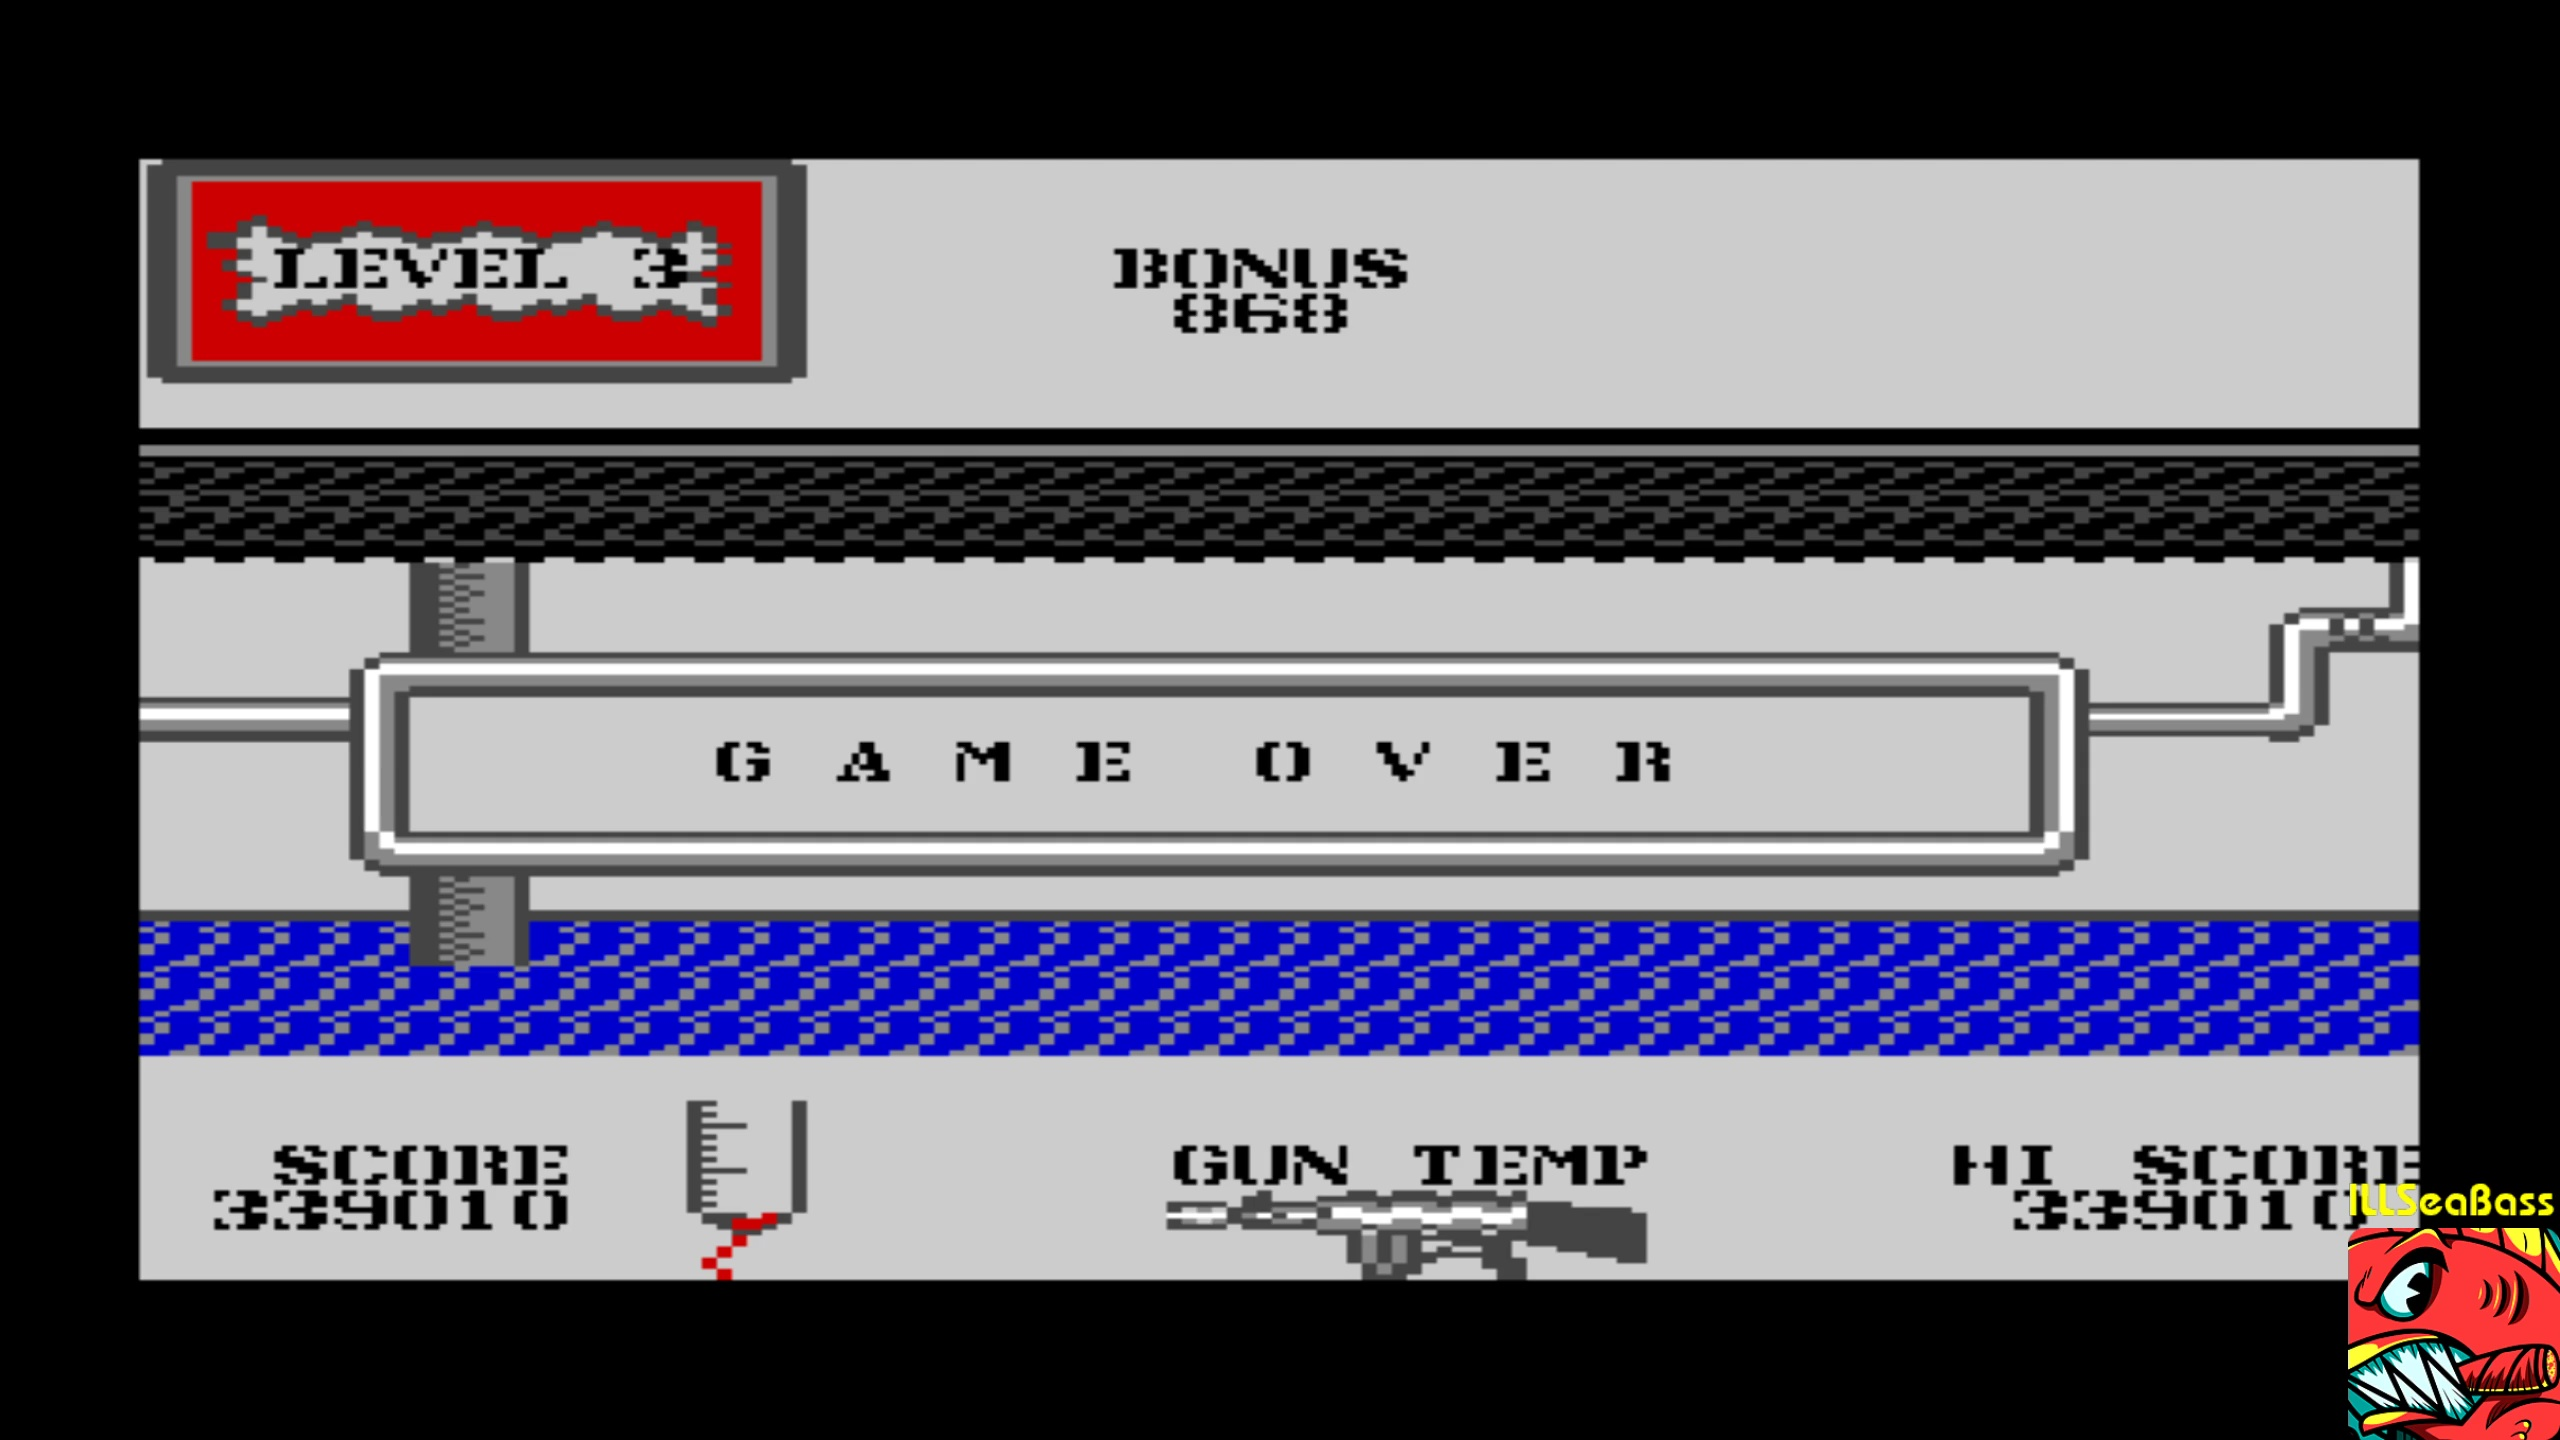 ILLSeaBass: Rapid Fire (Commodore 64 Emulated) 339,010 points on 2018-02-17 14:23:23